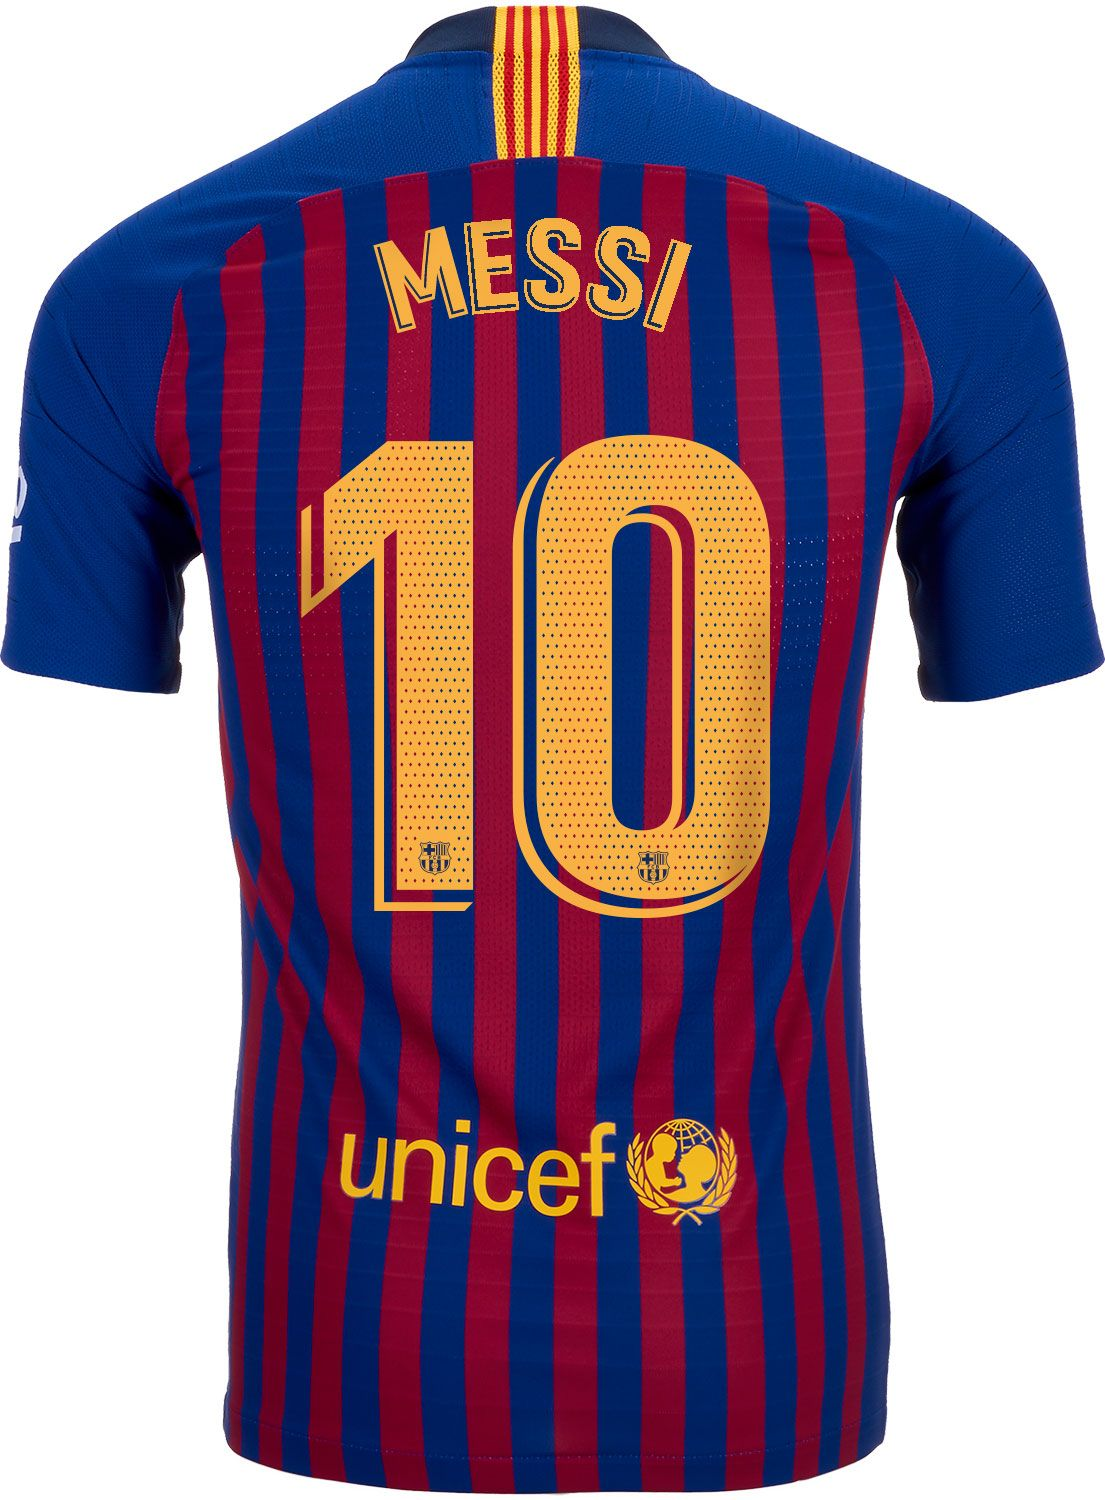 2018 19 Nike FC Barcelona Leo Messi Home Match Jersey. Buy it from  SoccerPro. c3affb356f61f